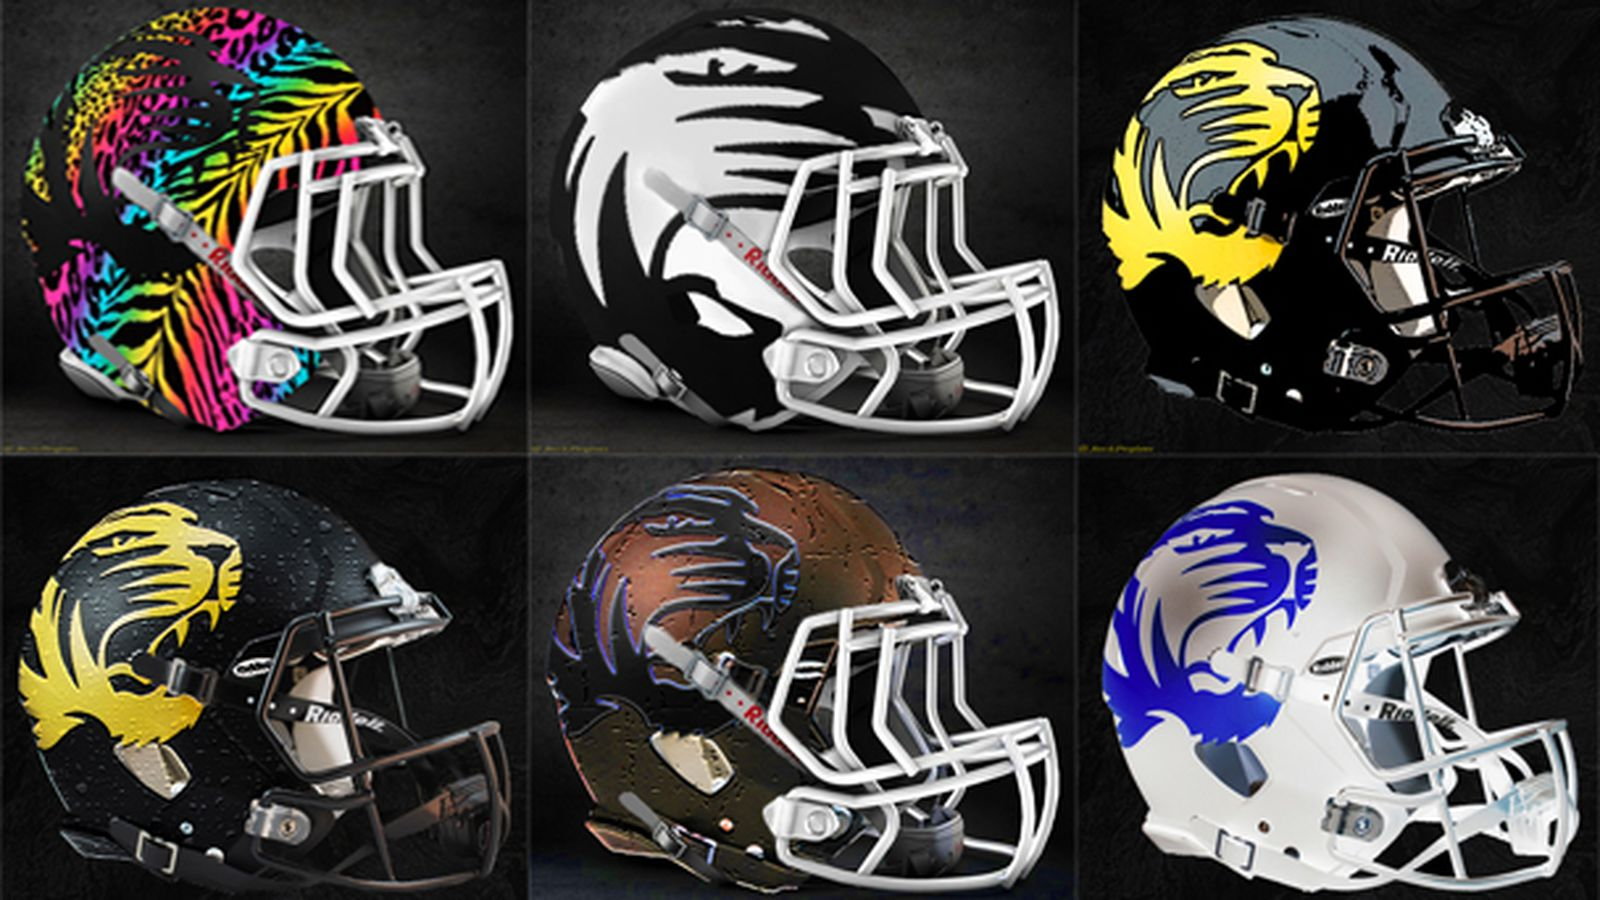 Design Company creates alternate Mizzou Football concept helmets - Rock M Nation